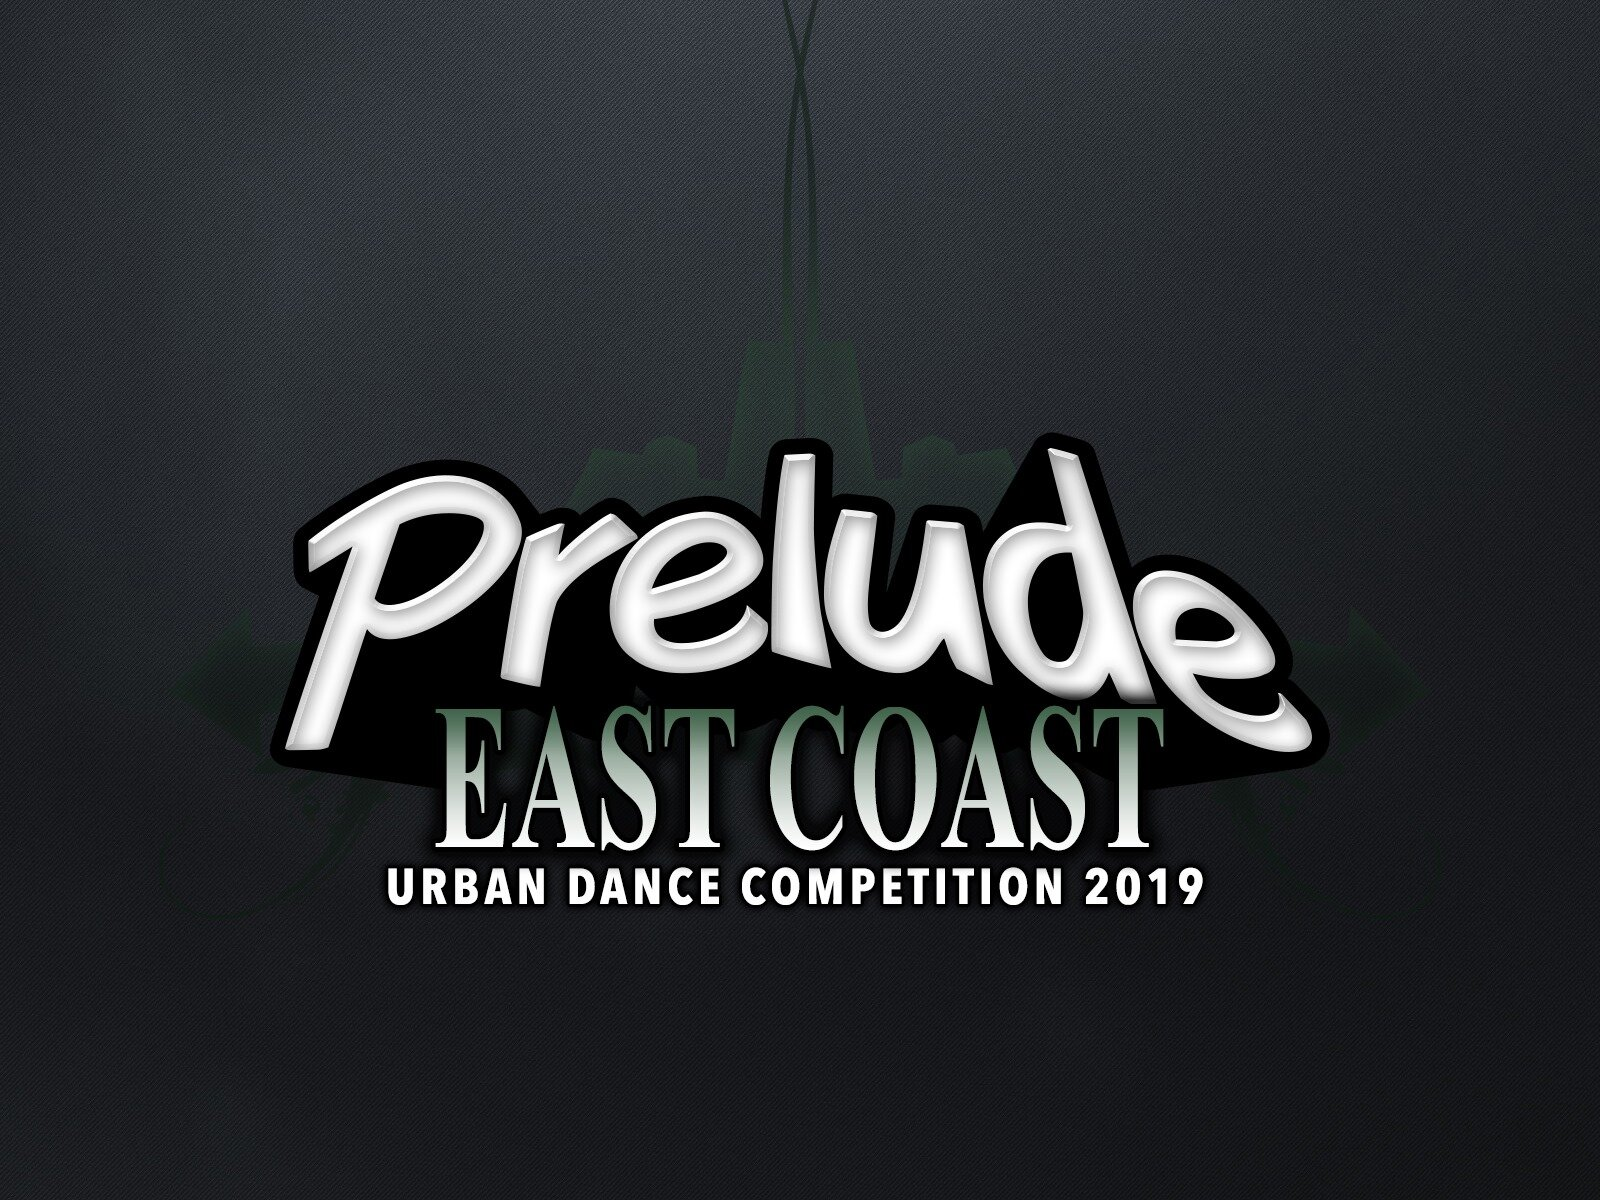 Prelude East Coast 2019 - Saturday, November 9th, 7PMPrelude's goal is to support the Dance Community with a competition focusing and showcasing local & regional hip-hop dance groups, dance companies, and the overall dance community.